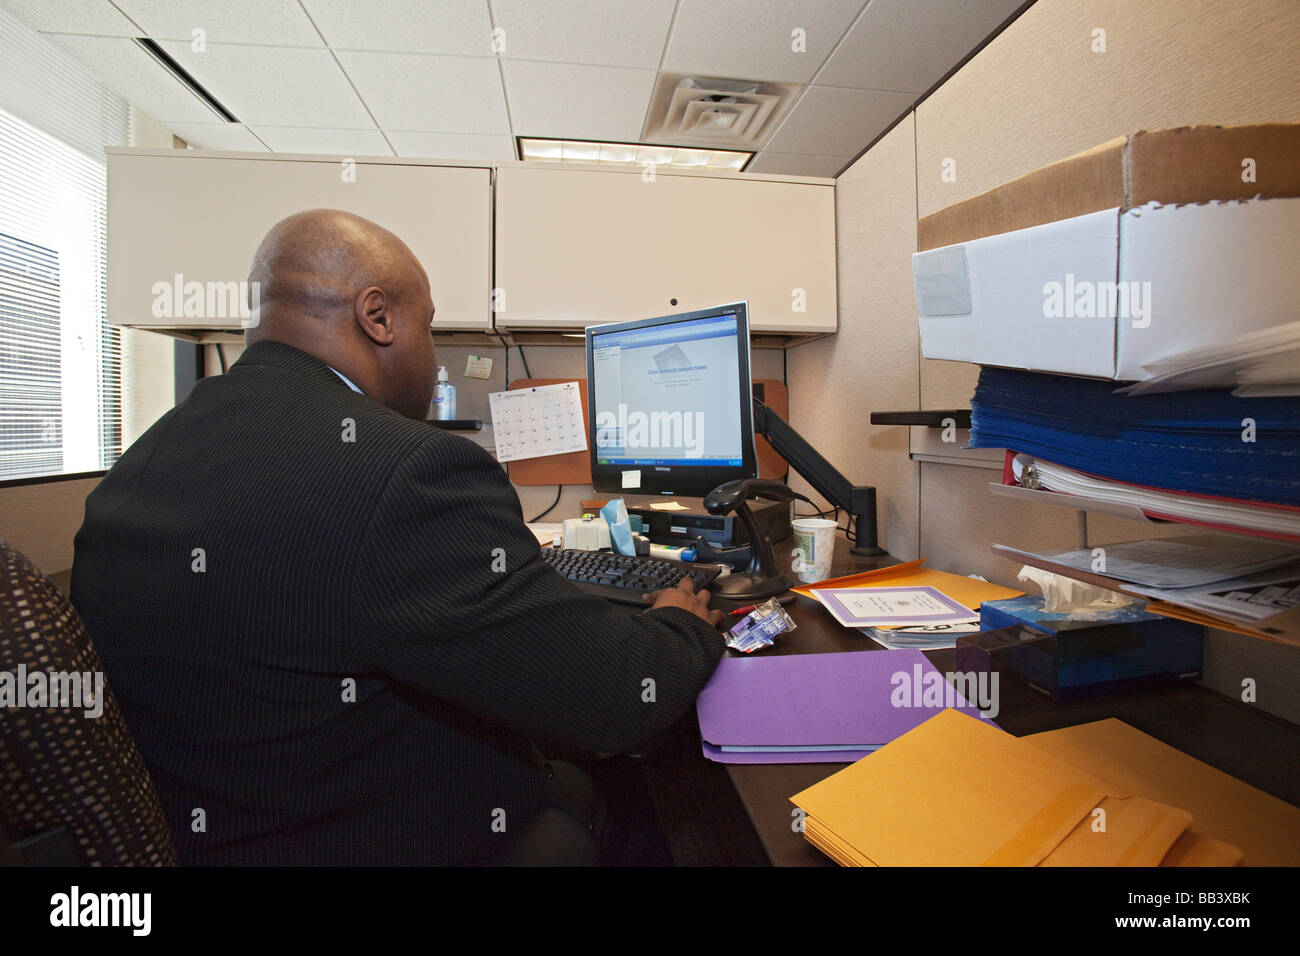 Detroit Michigan A Worker Processes Applications For Passports At The  Detroit Passport Agency Stock Image